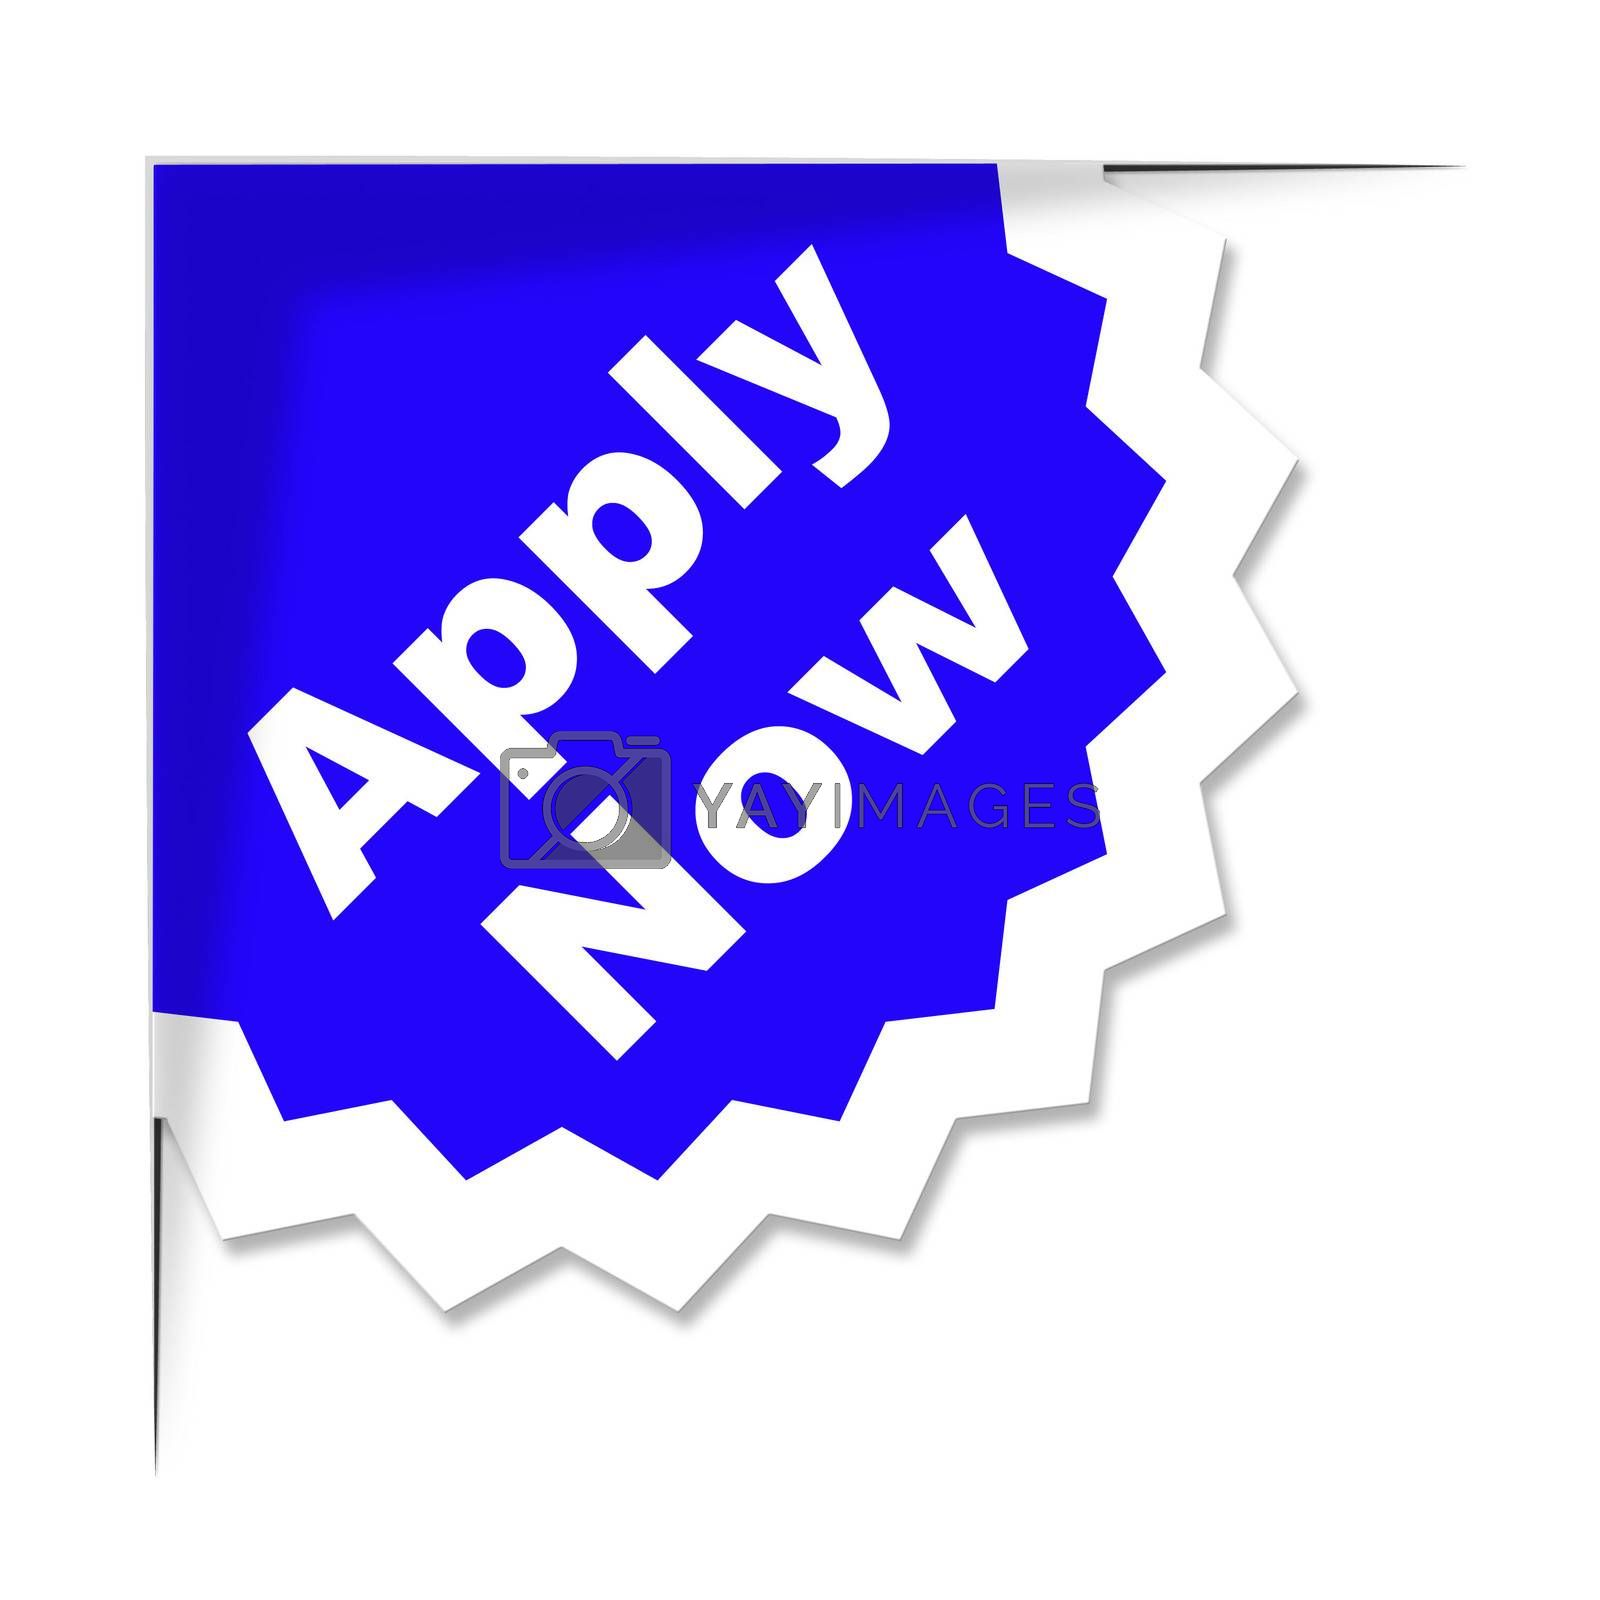 Apply Now Shows At This Time And Application by stuartmiles